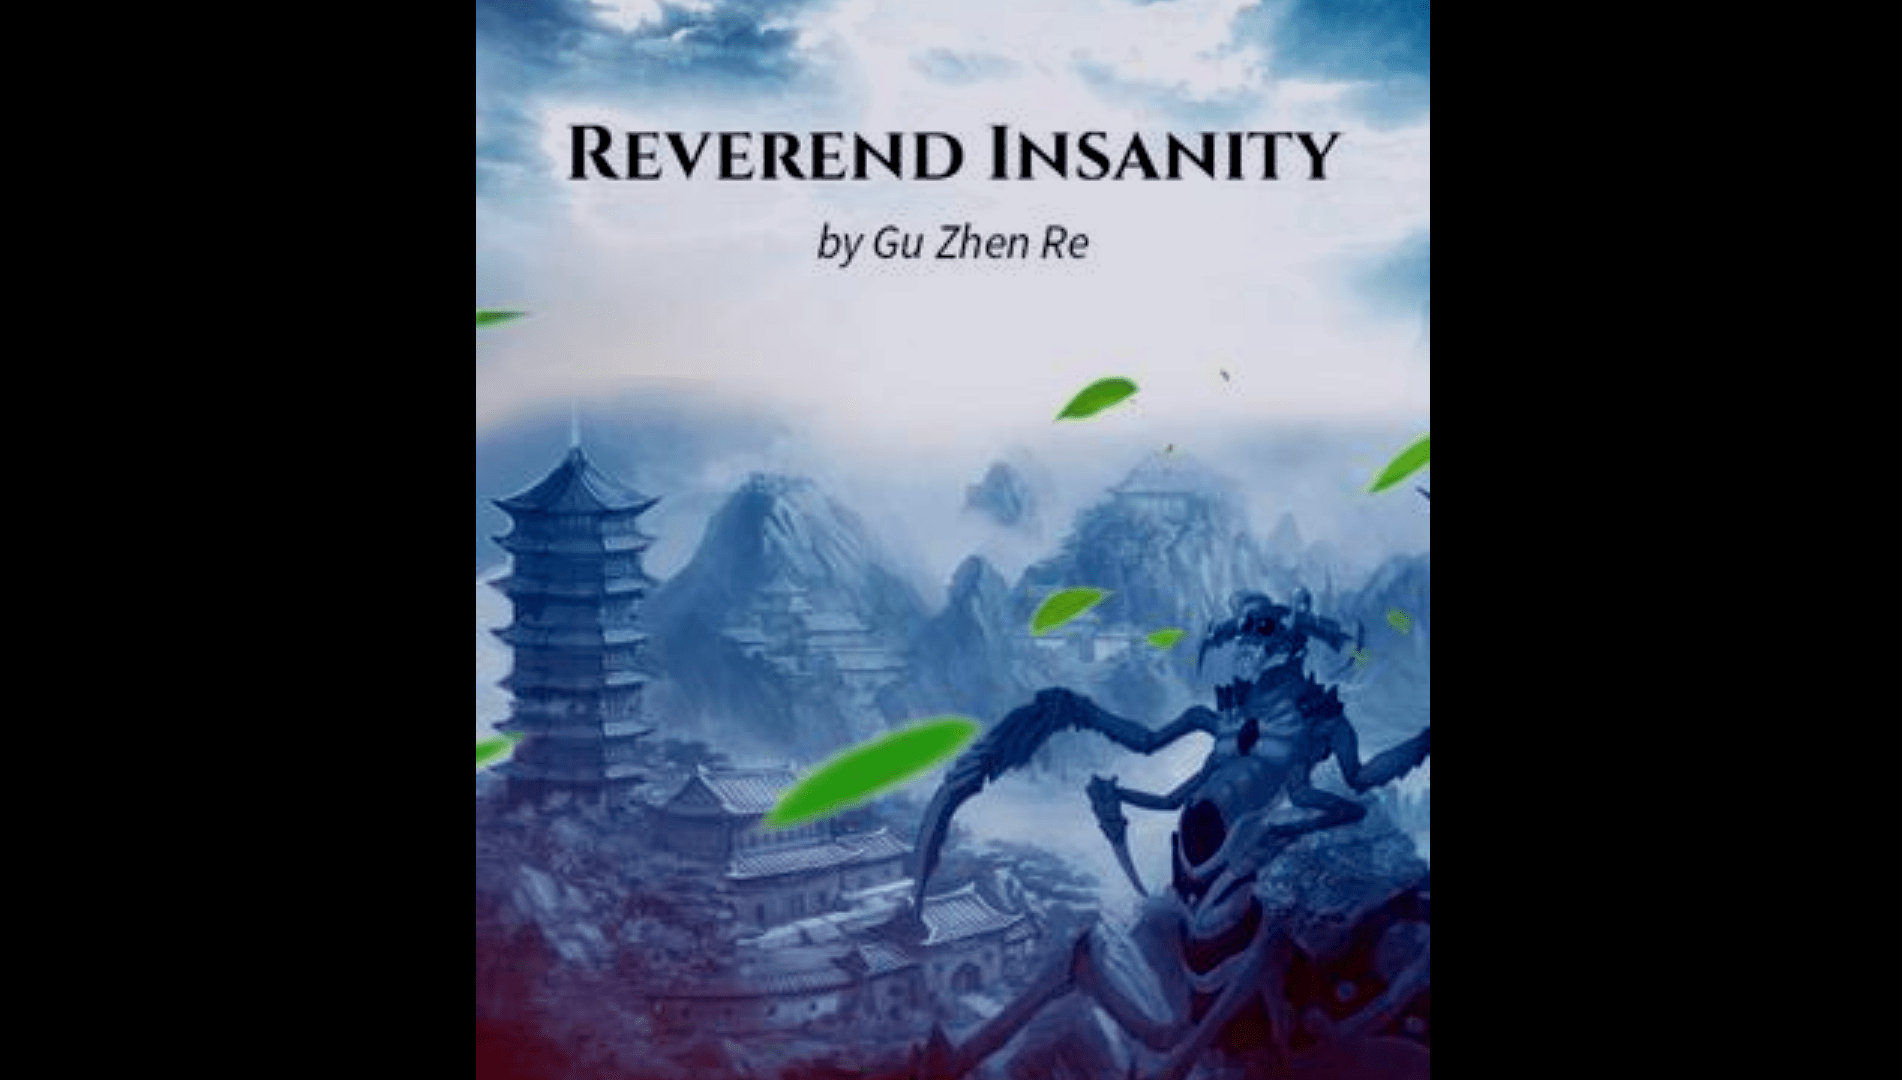 Reverend Insanity Novel